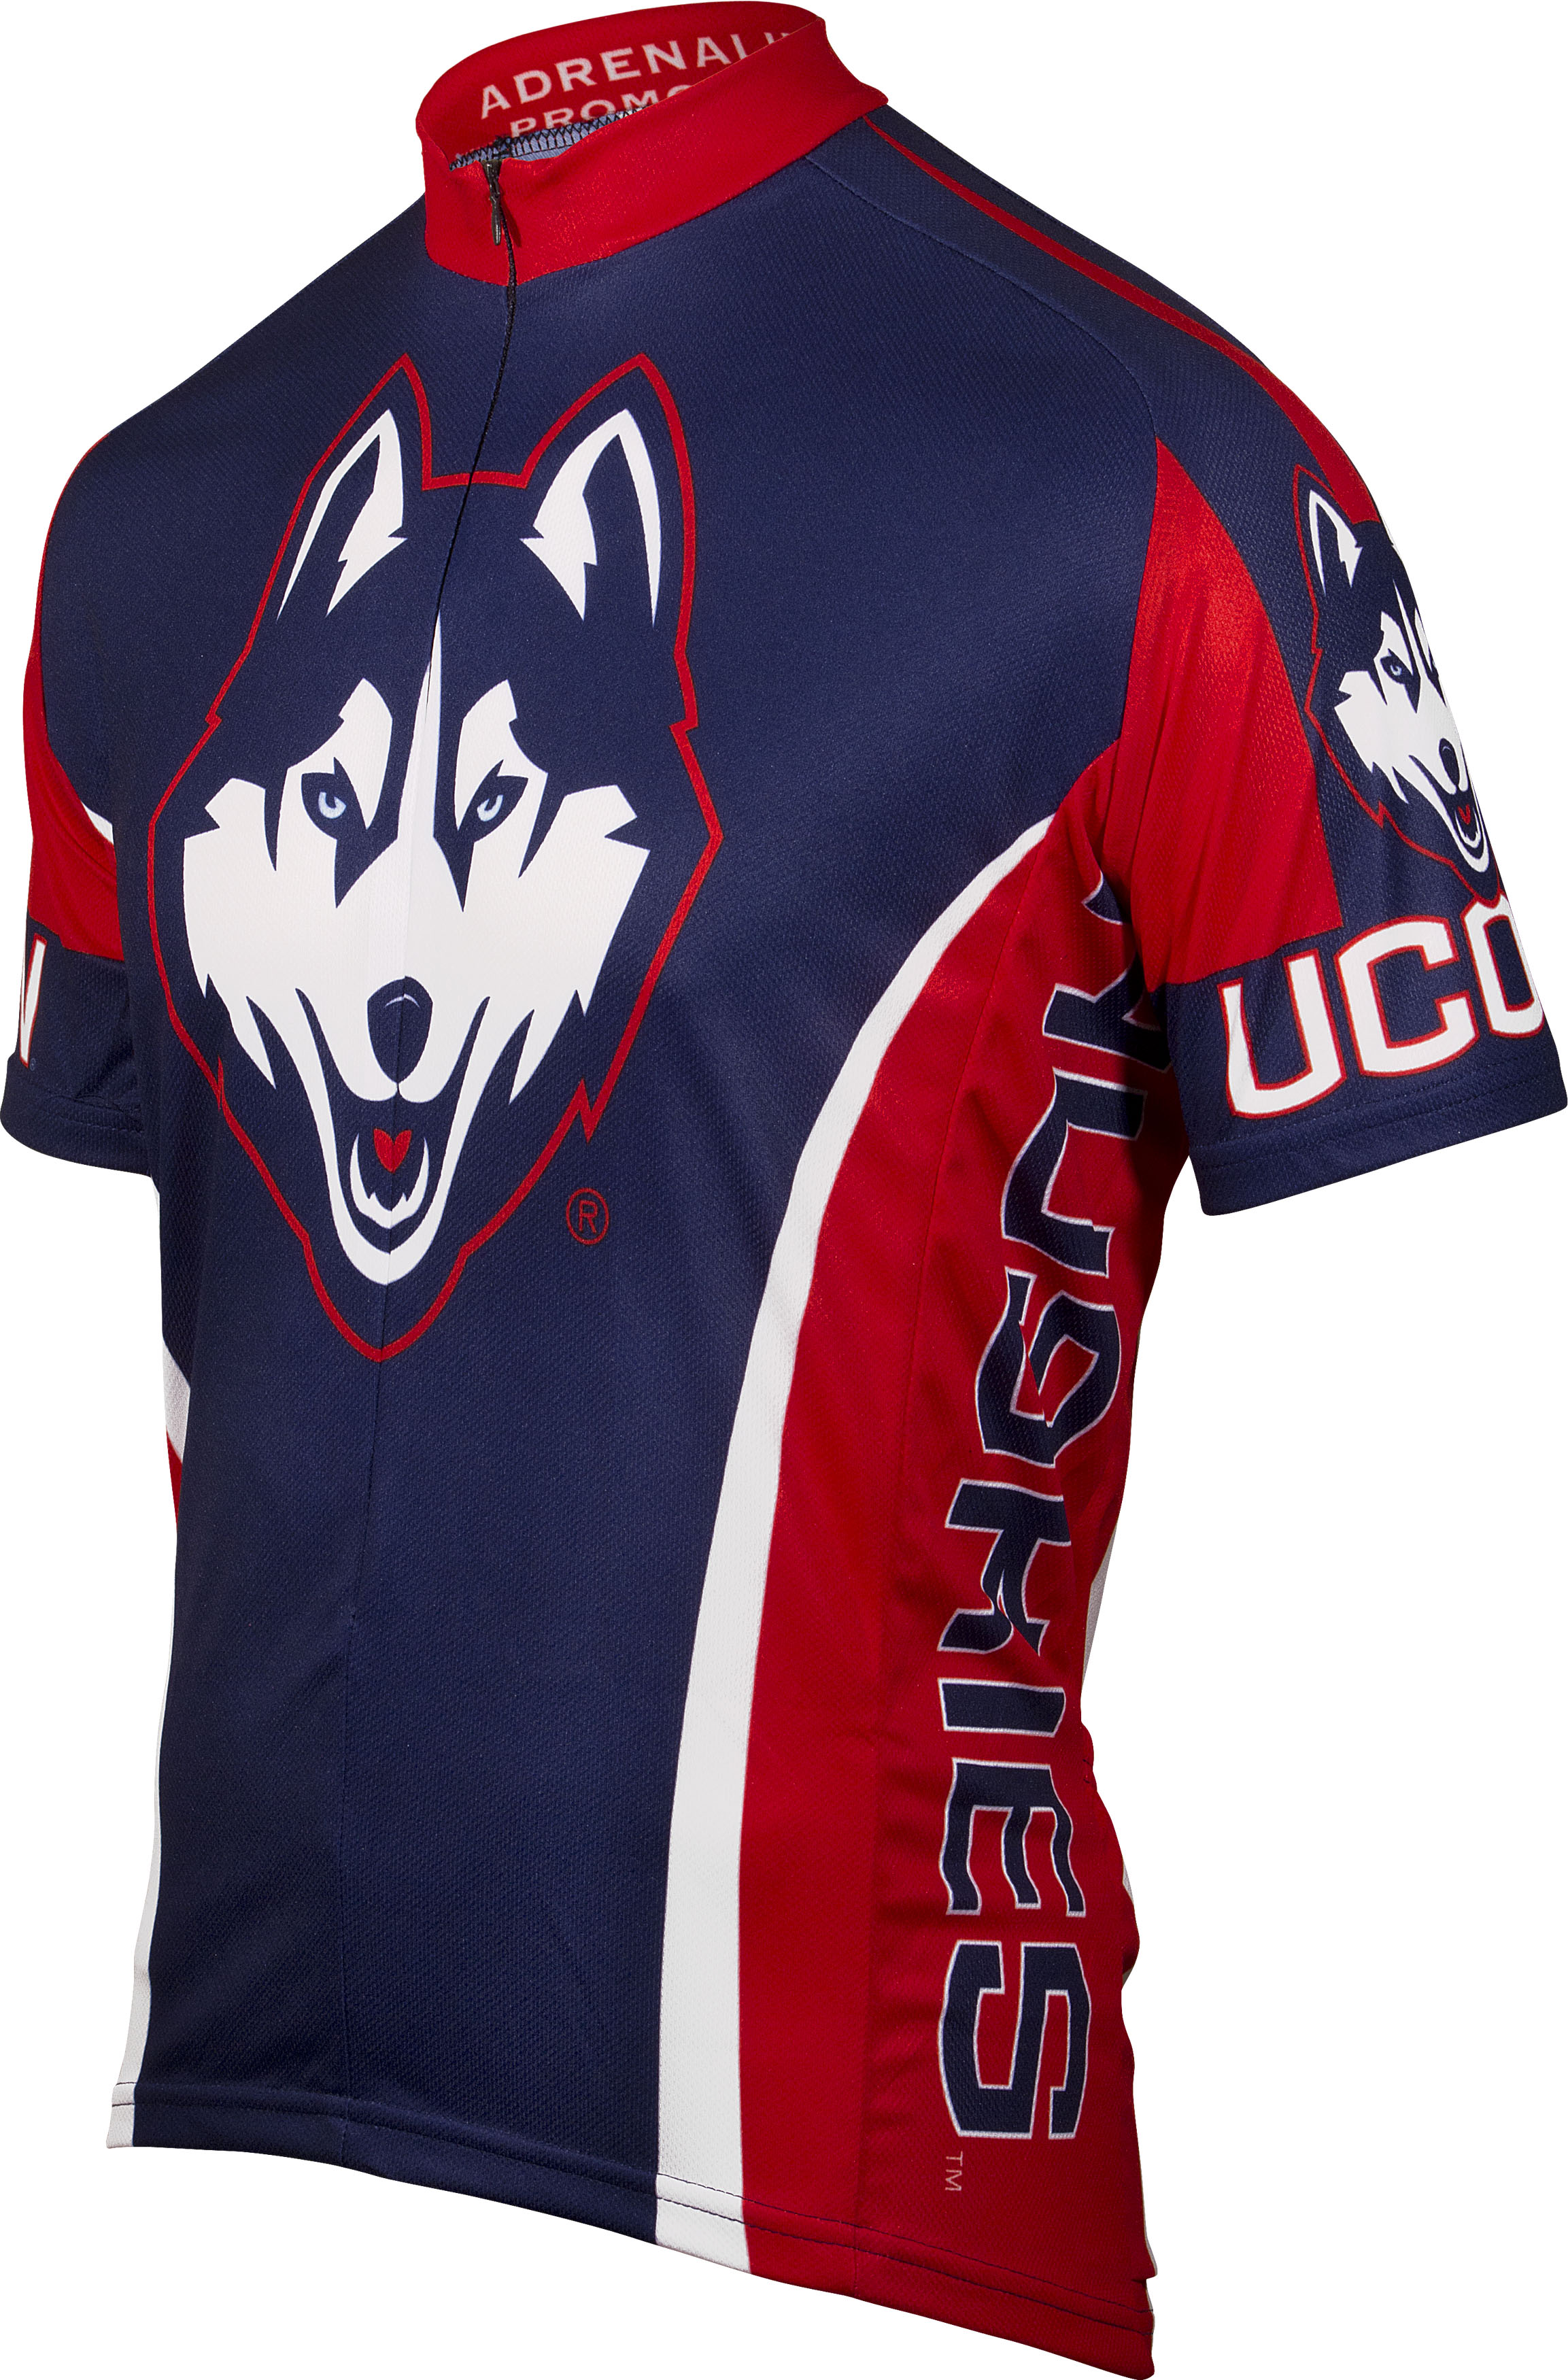 University of Connecticut (UCONN) Cycling Jersey 2XL